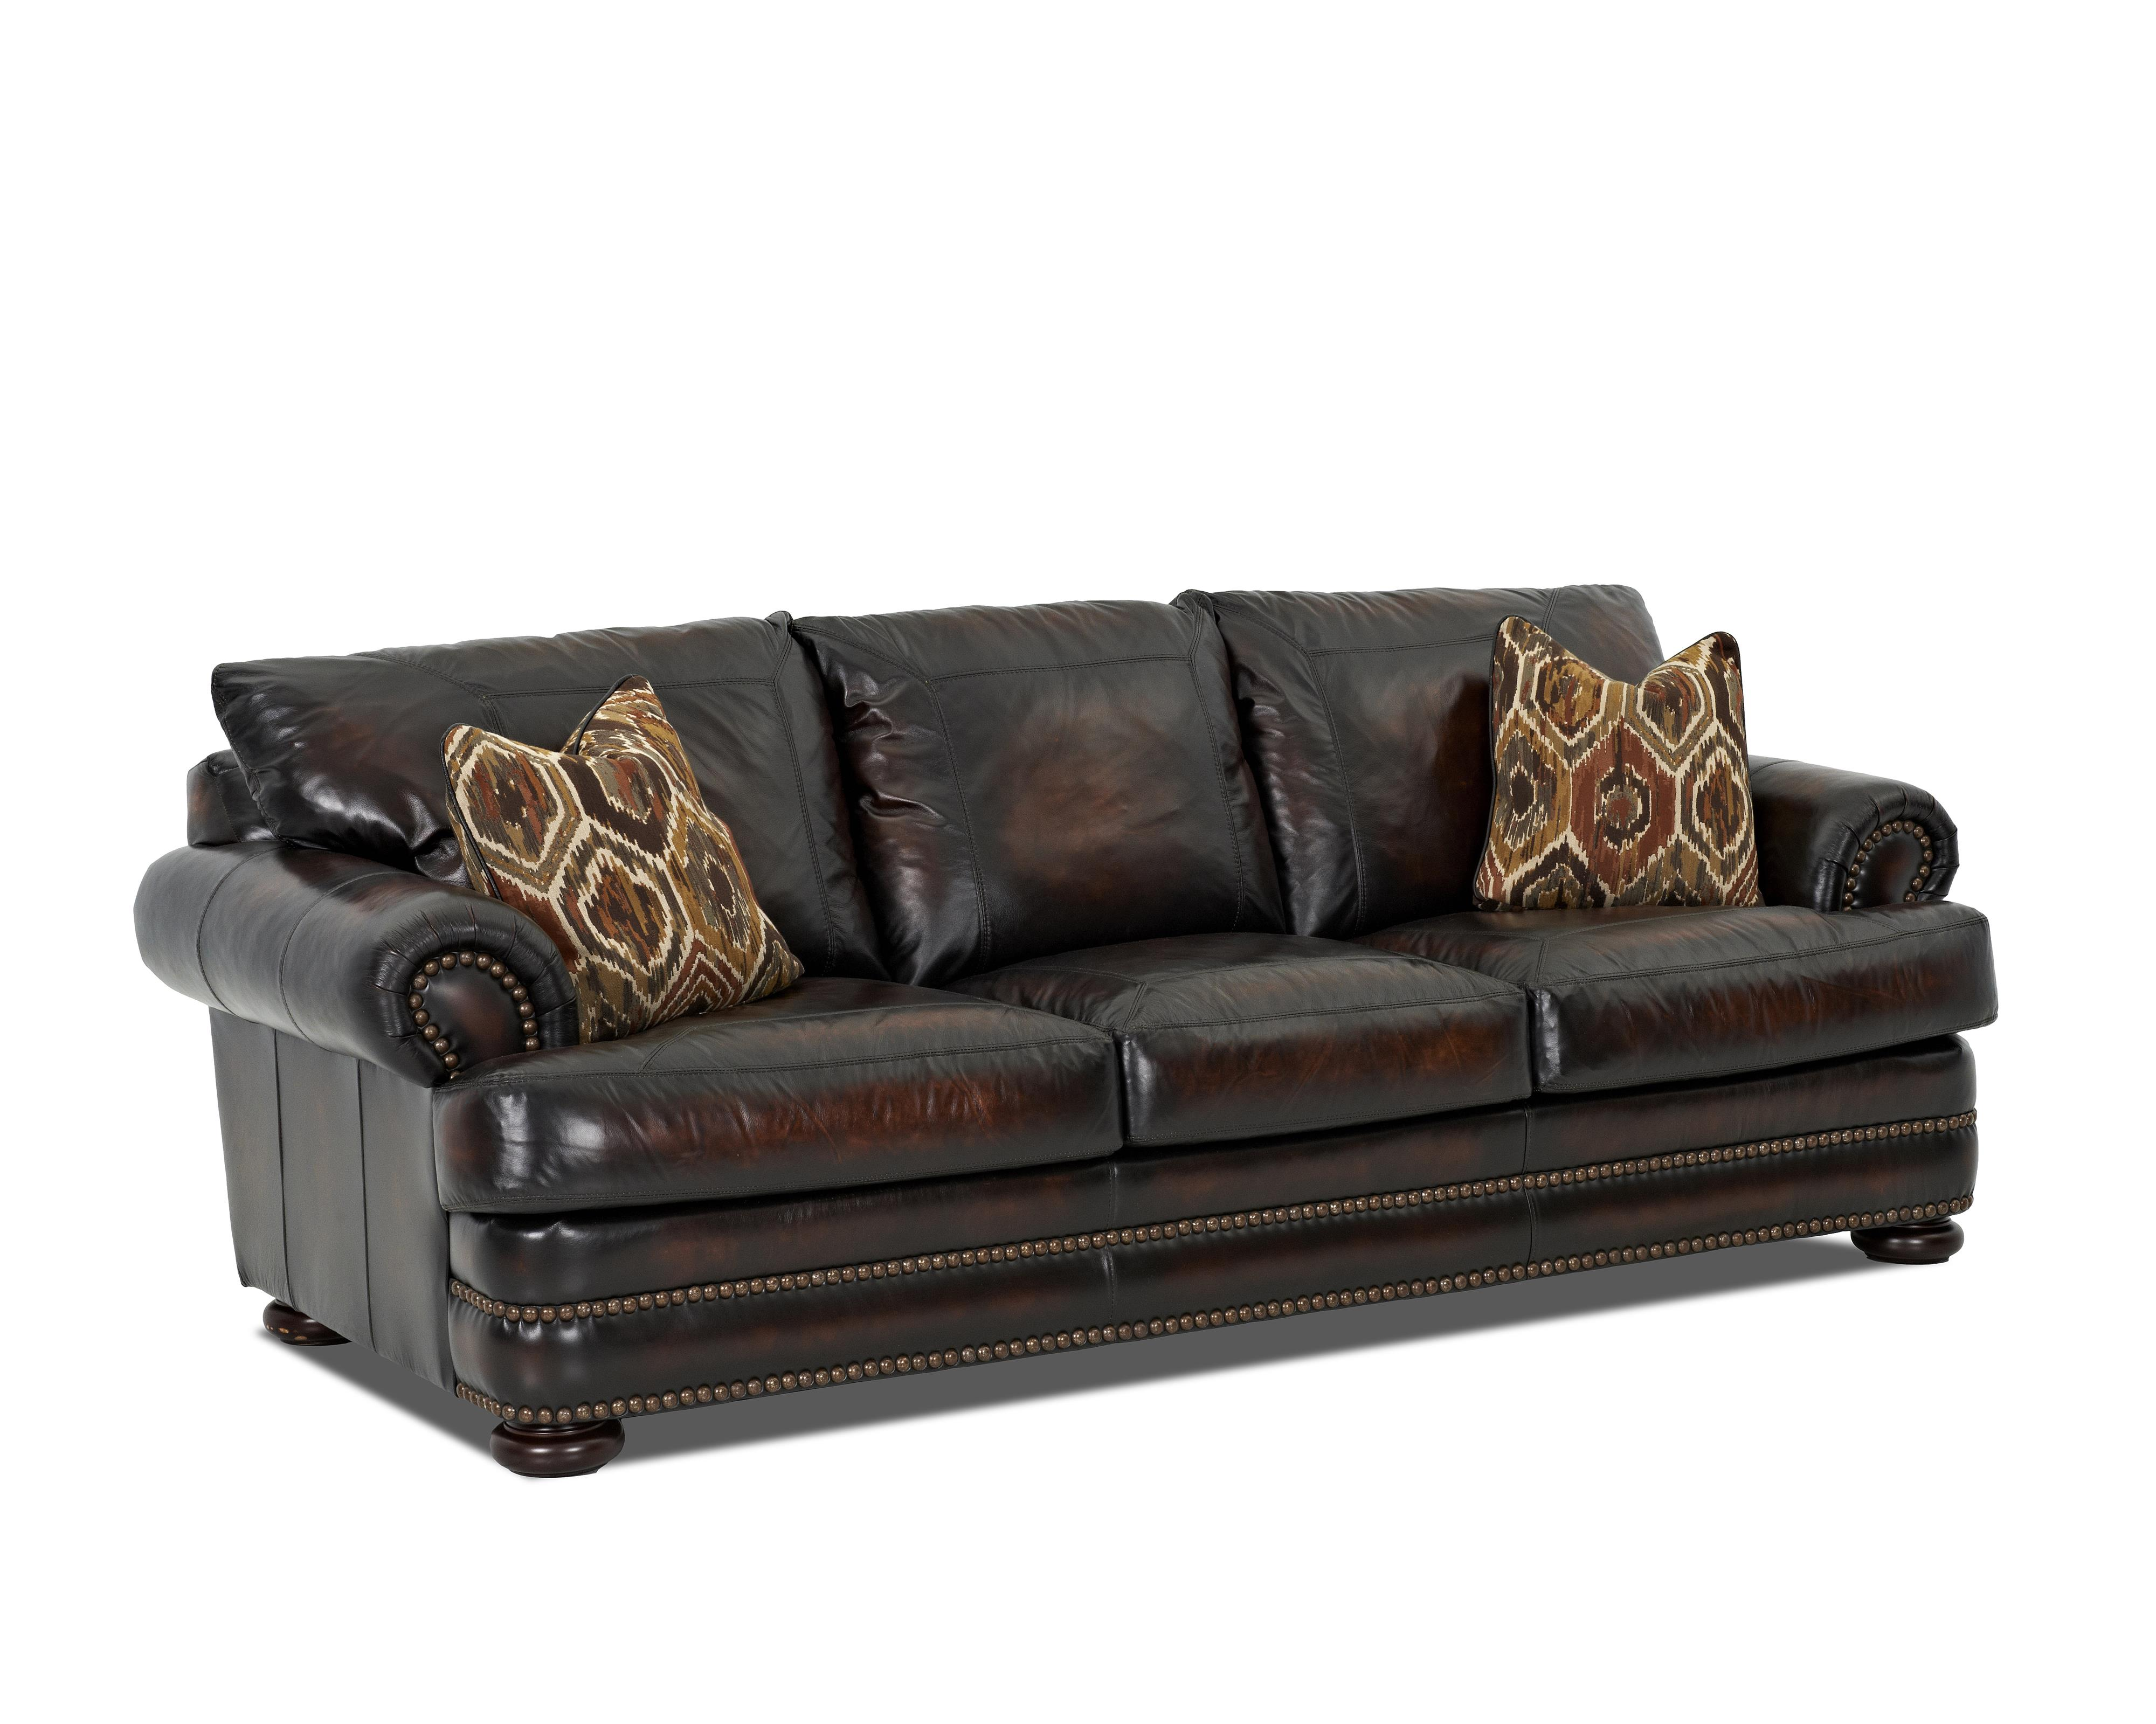 Montezuma Leather Sofa by Klaussner at Northeast Factory Direct